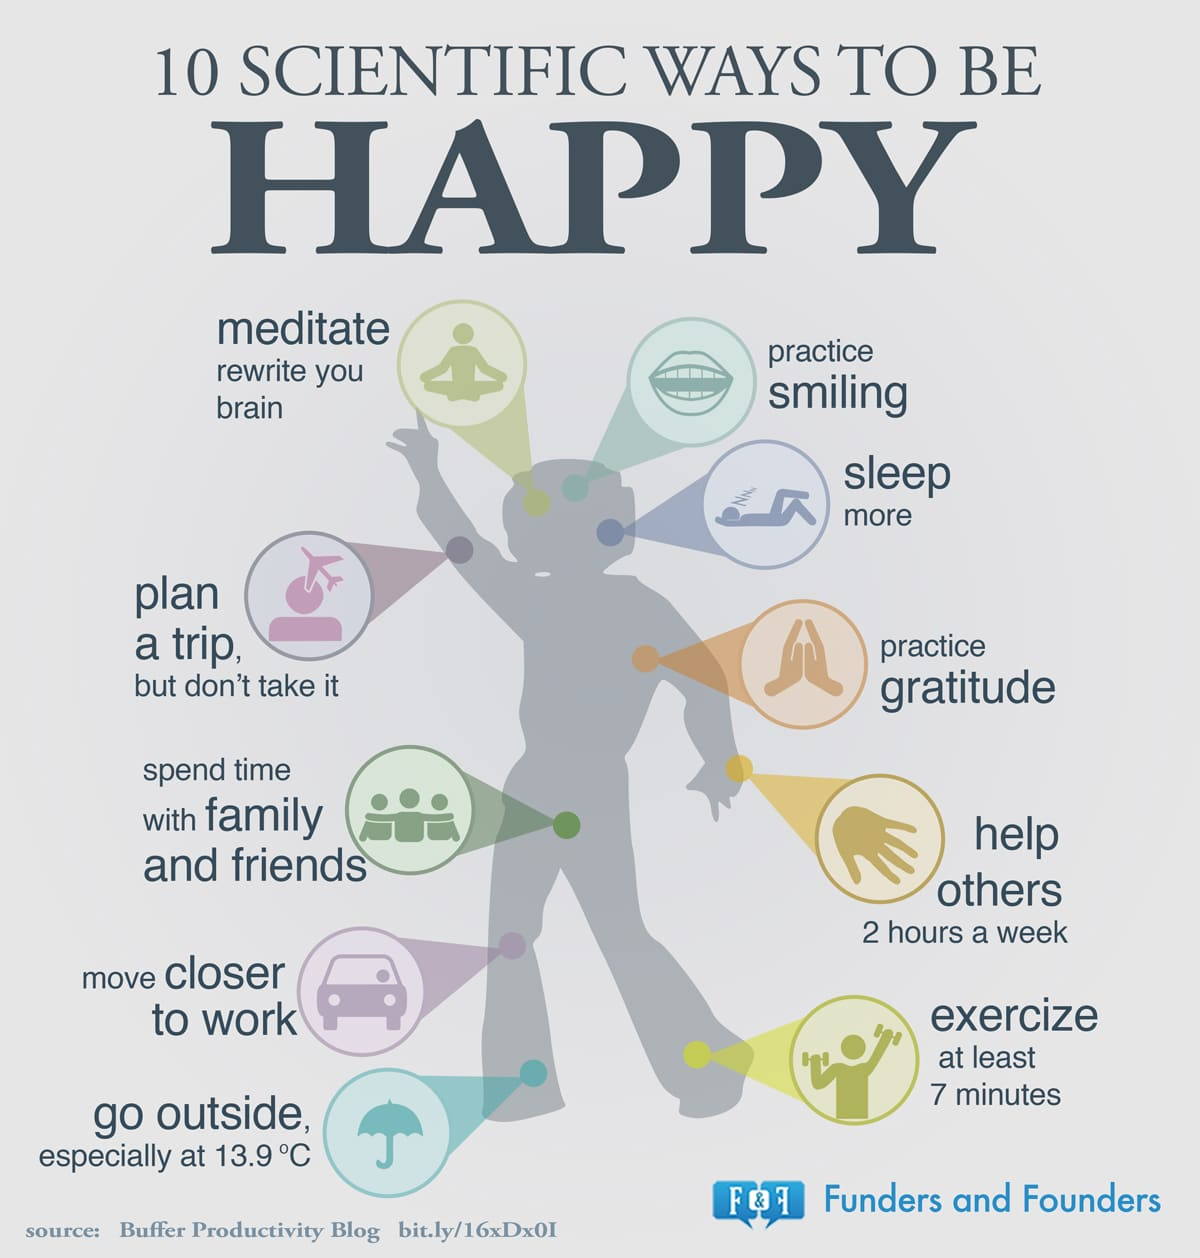 scientific-ways-to-be-happier